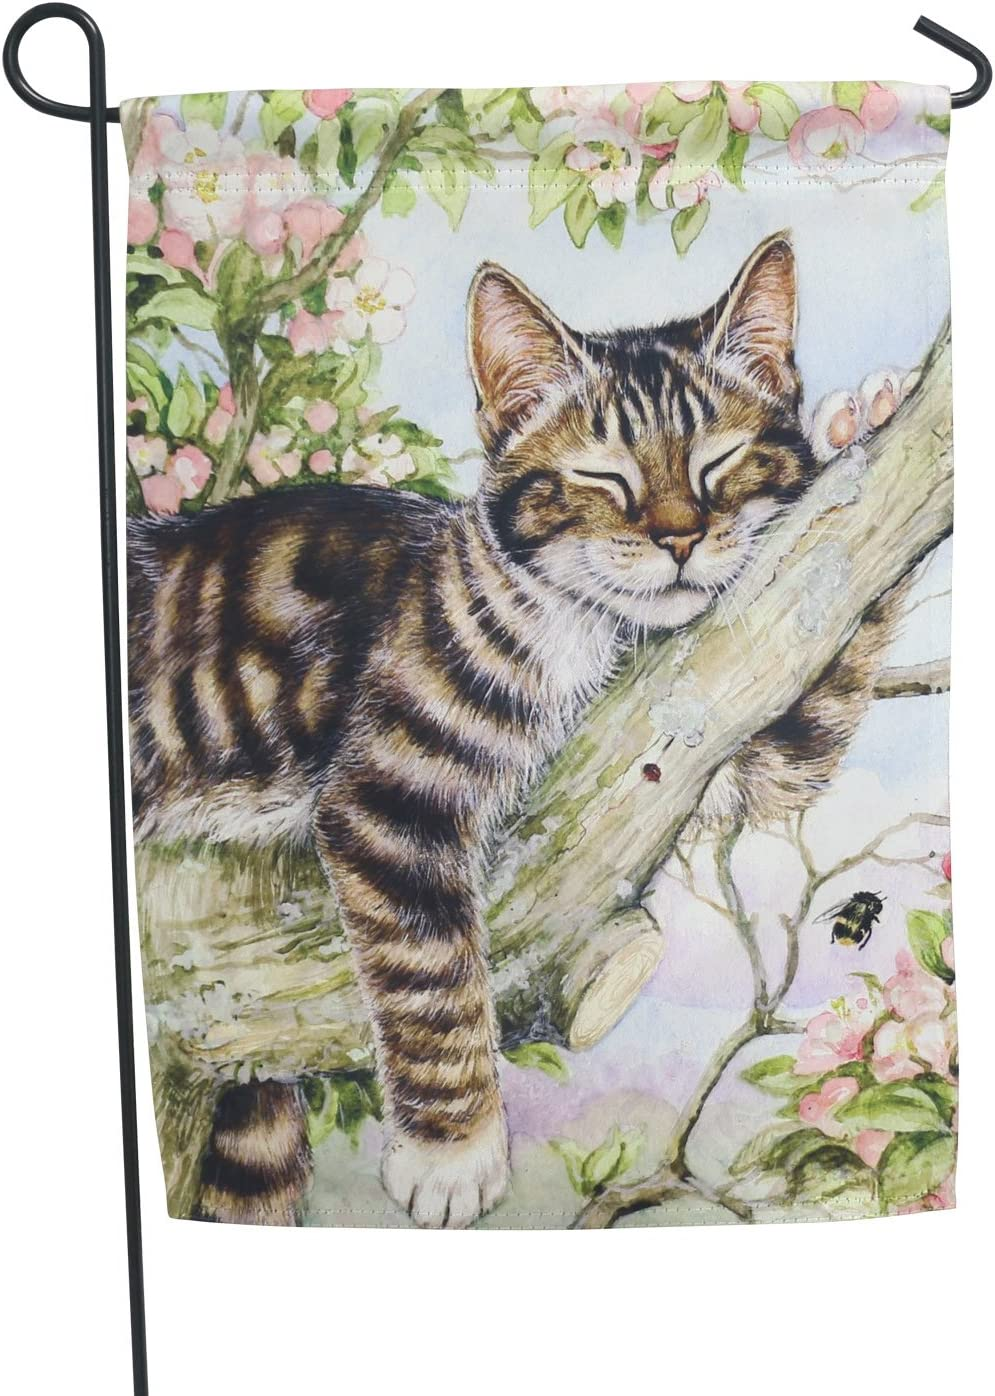 LAYOER Home Garden Flag 13 x 18 Inch House Double Sided Striped Cat & Flowers 12 x 18 Inch